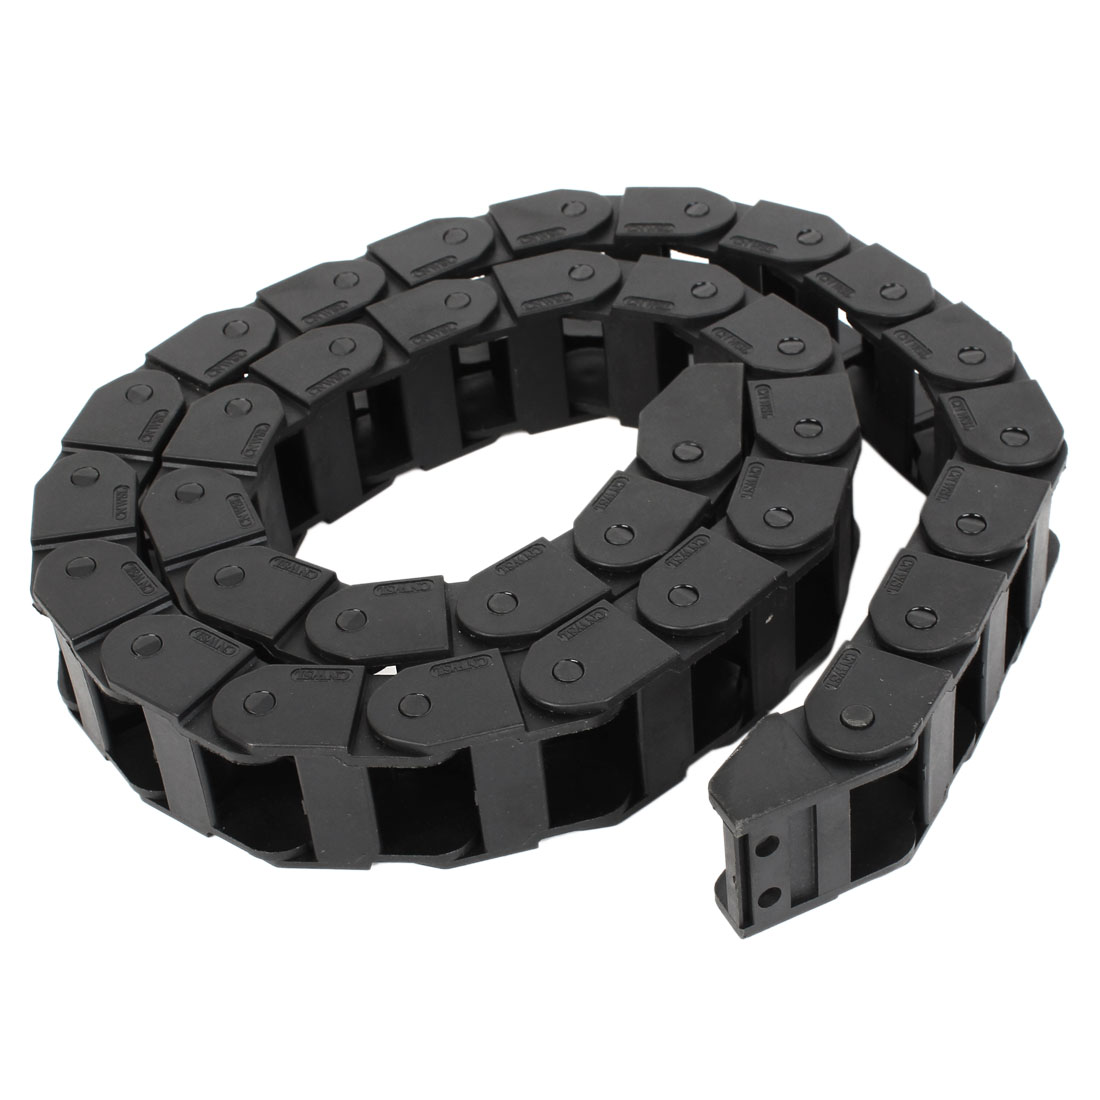 105cm Black Plastic Nested Flexible Drag Chain Cable Carrier 18mm x 25mm